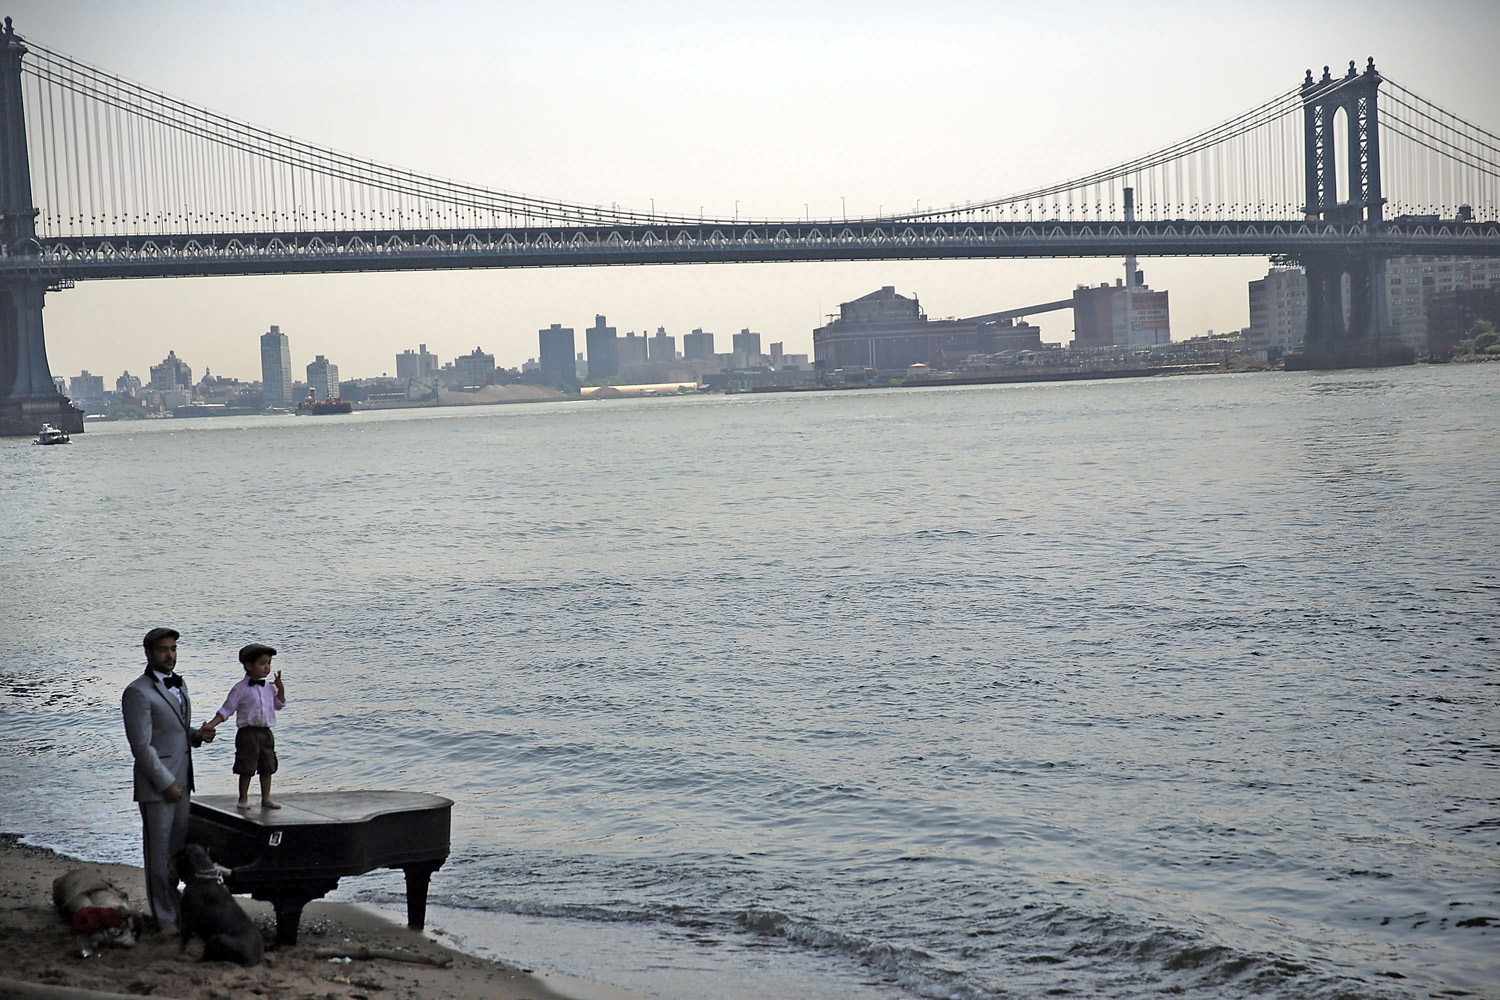 Mark Deliz and his son Sebastion, 3, pause at a grand piano that has mysteriously landed on a sliver of beach underneath the Brooklyn Bridge in New York City on June 3, 2014.